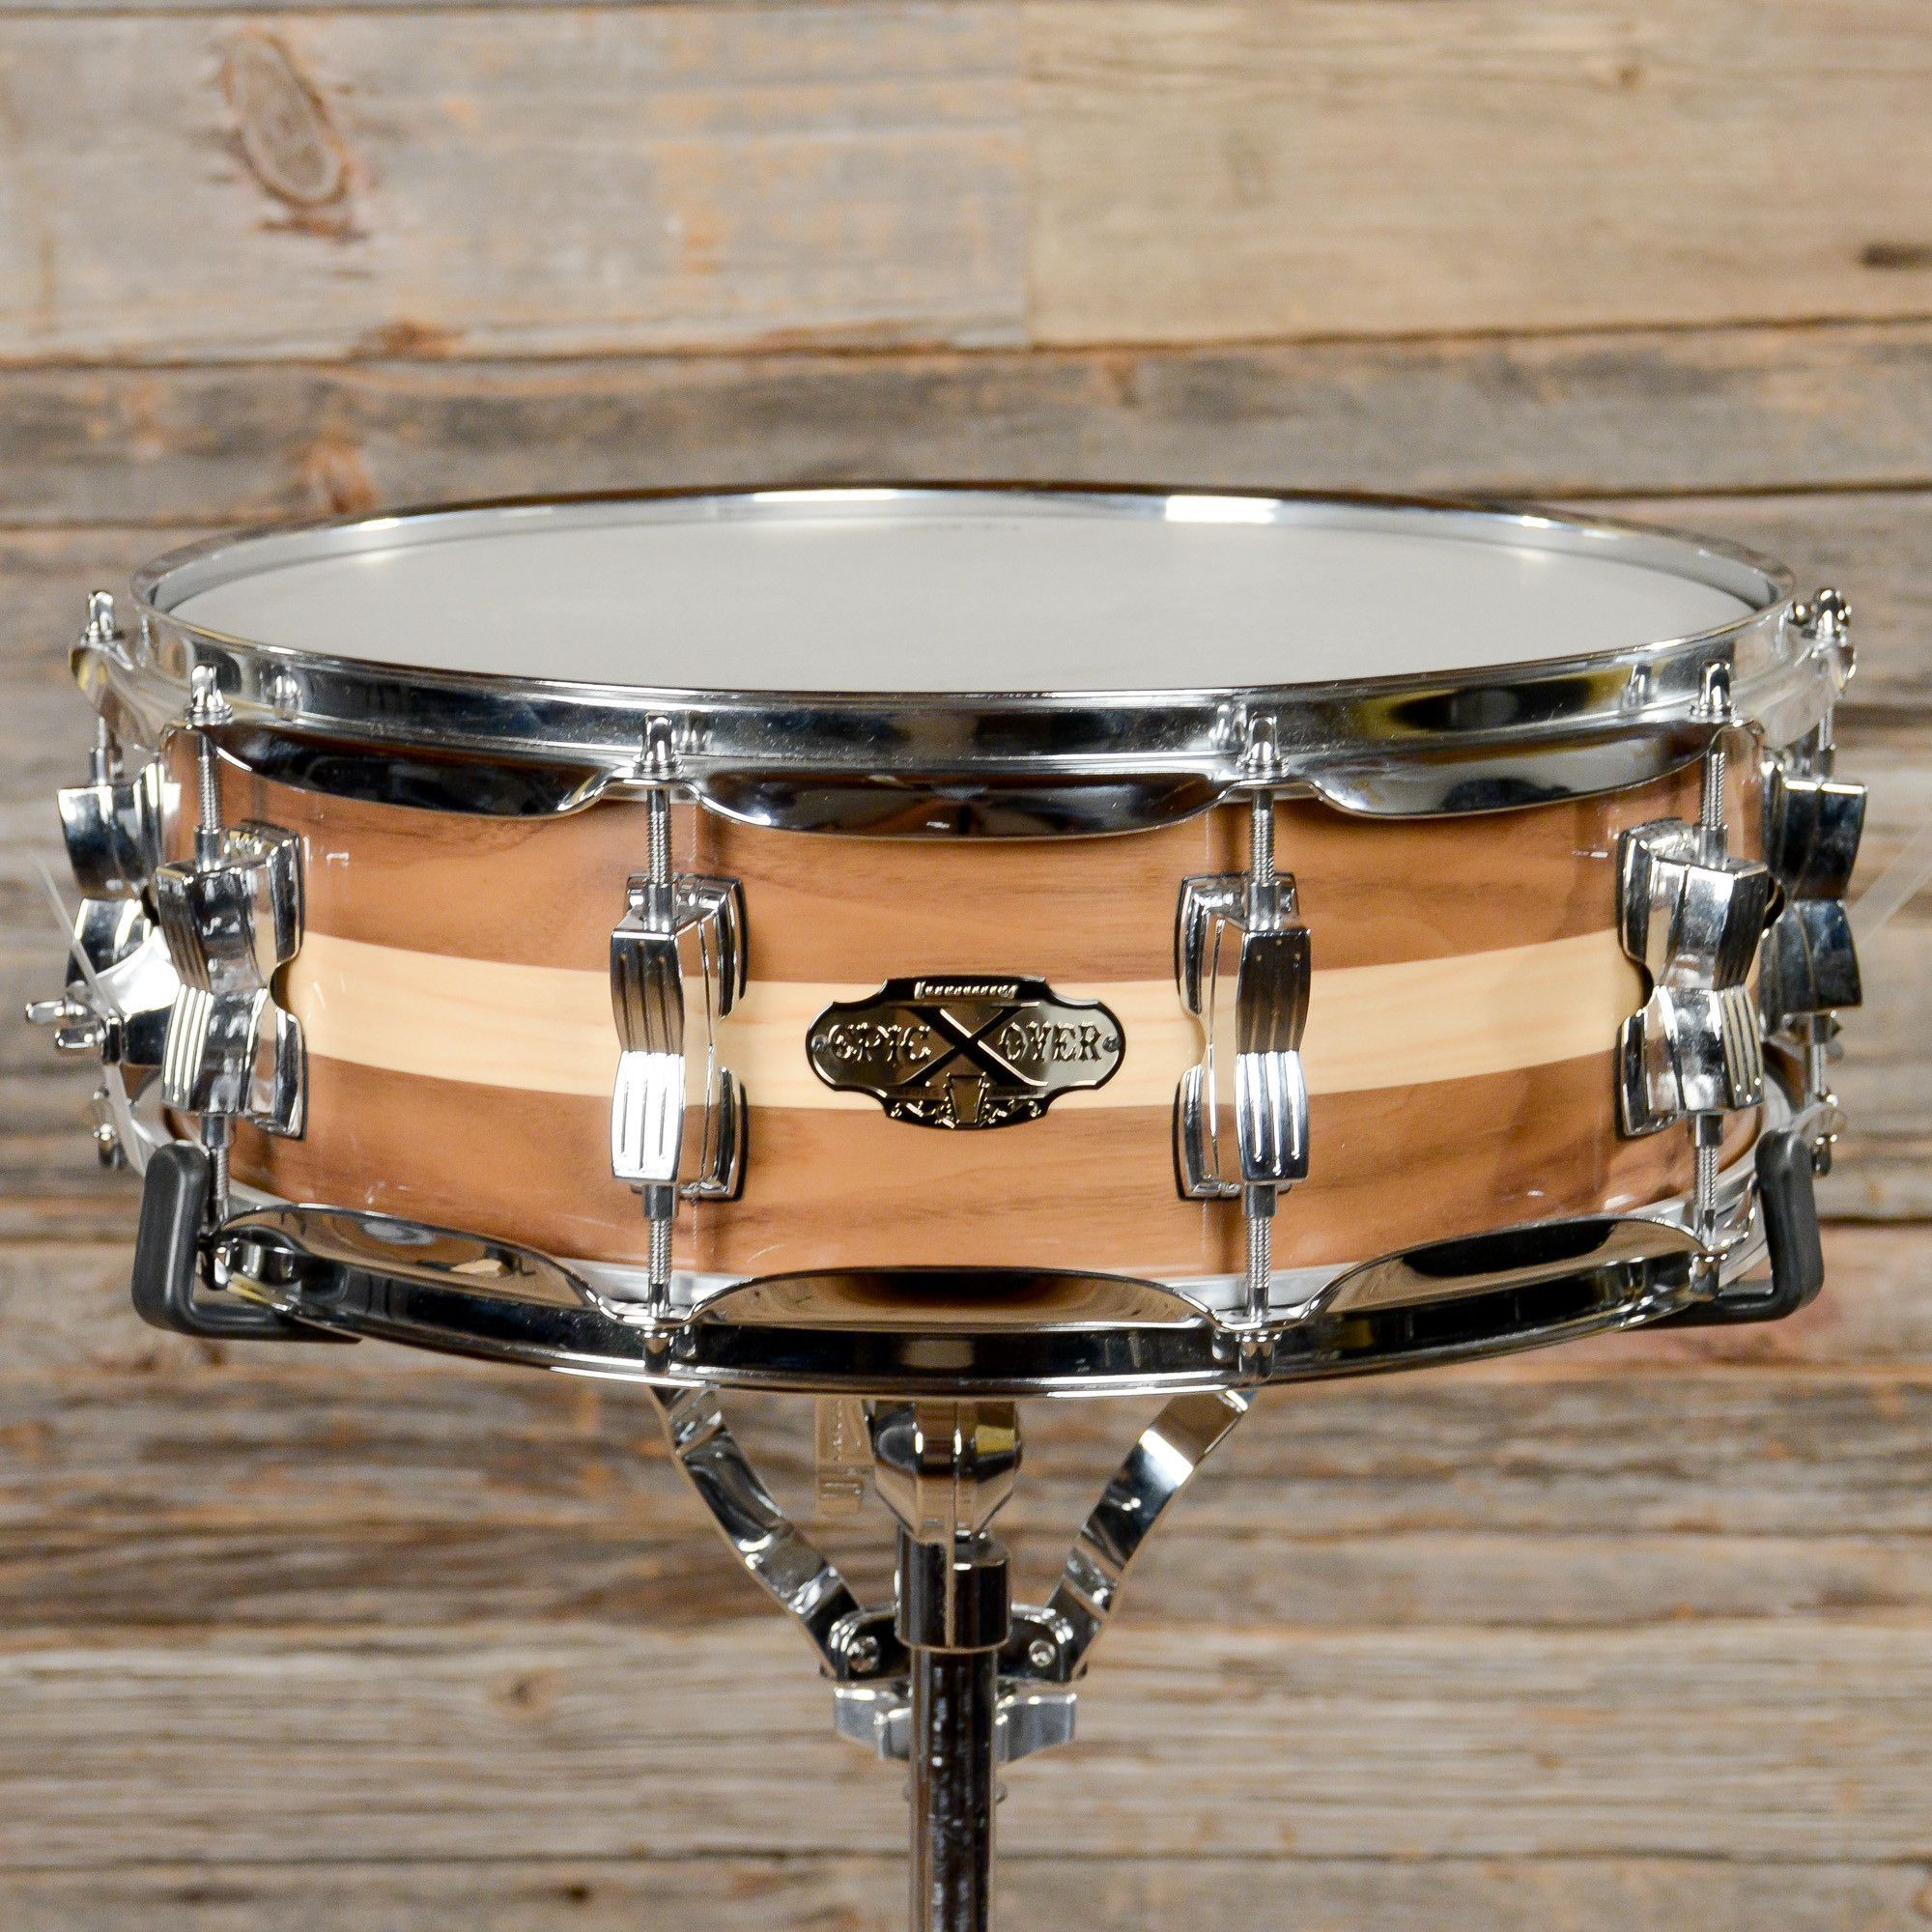 Just Arrived Snare Drum Drums Percussion